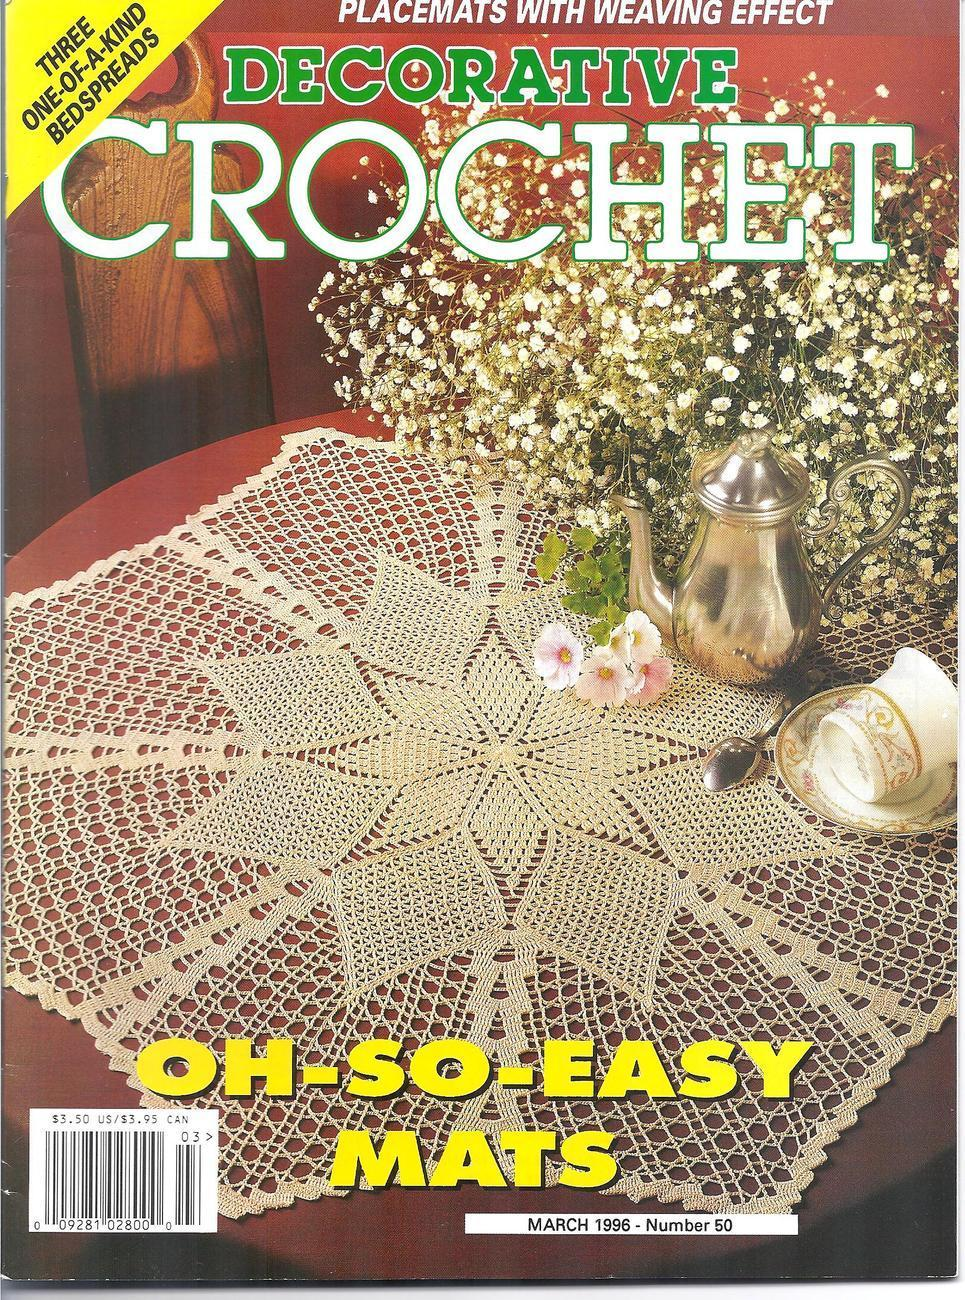 Decorative Crochet : Decorative Crochet Magazine # 50~~28 Patterns - Other